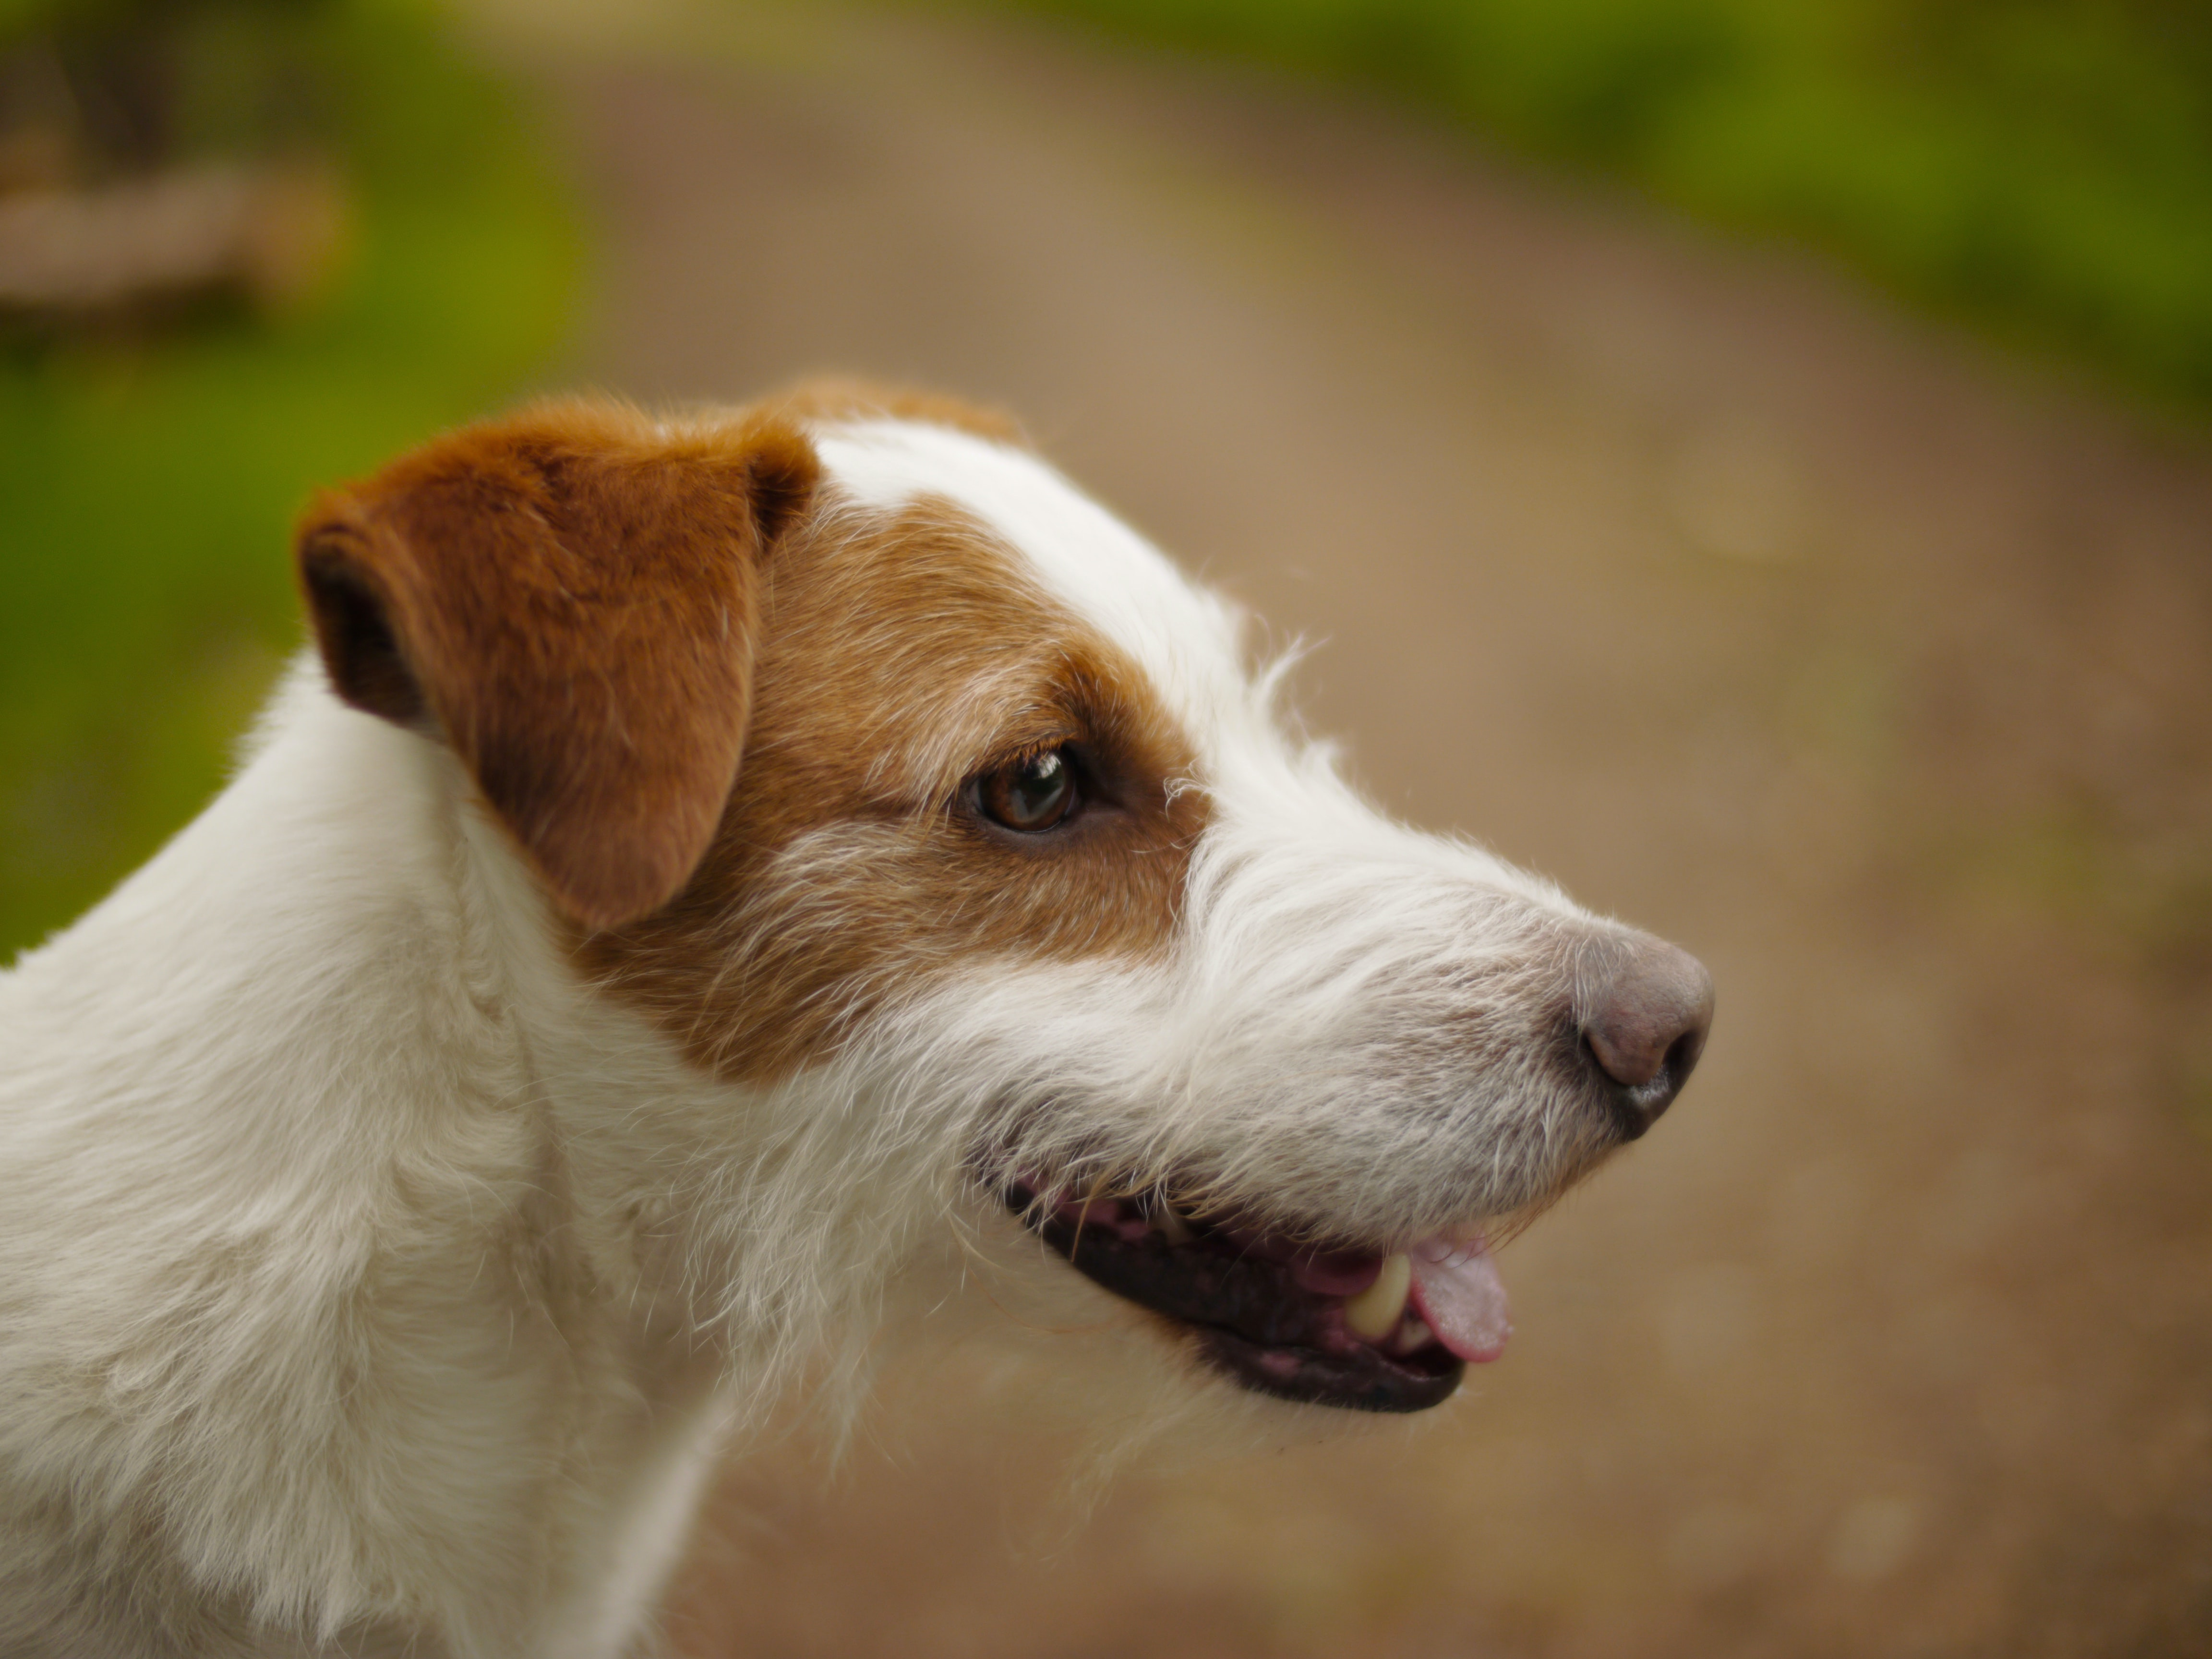 tilt shift lens photography of wired haired Jack Russell terrier